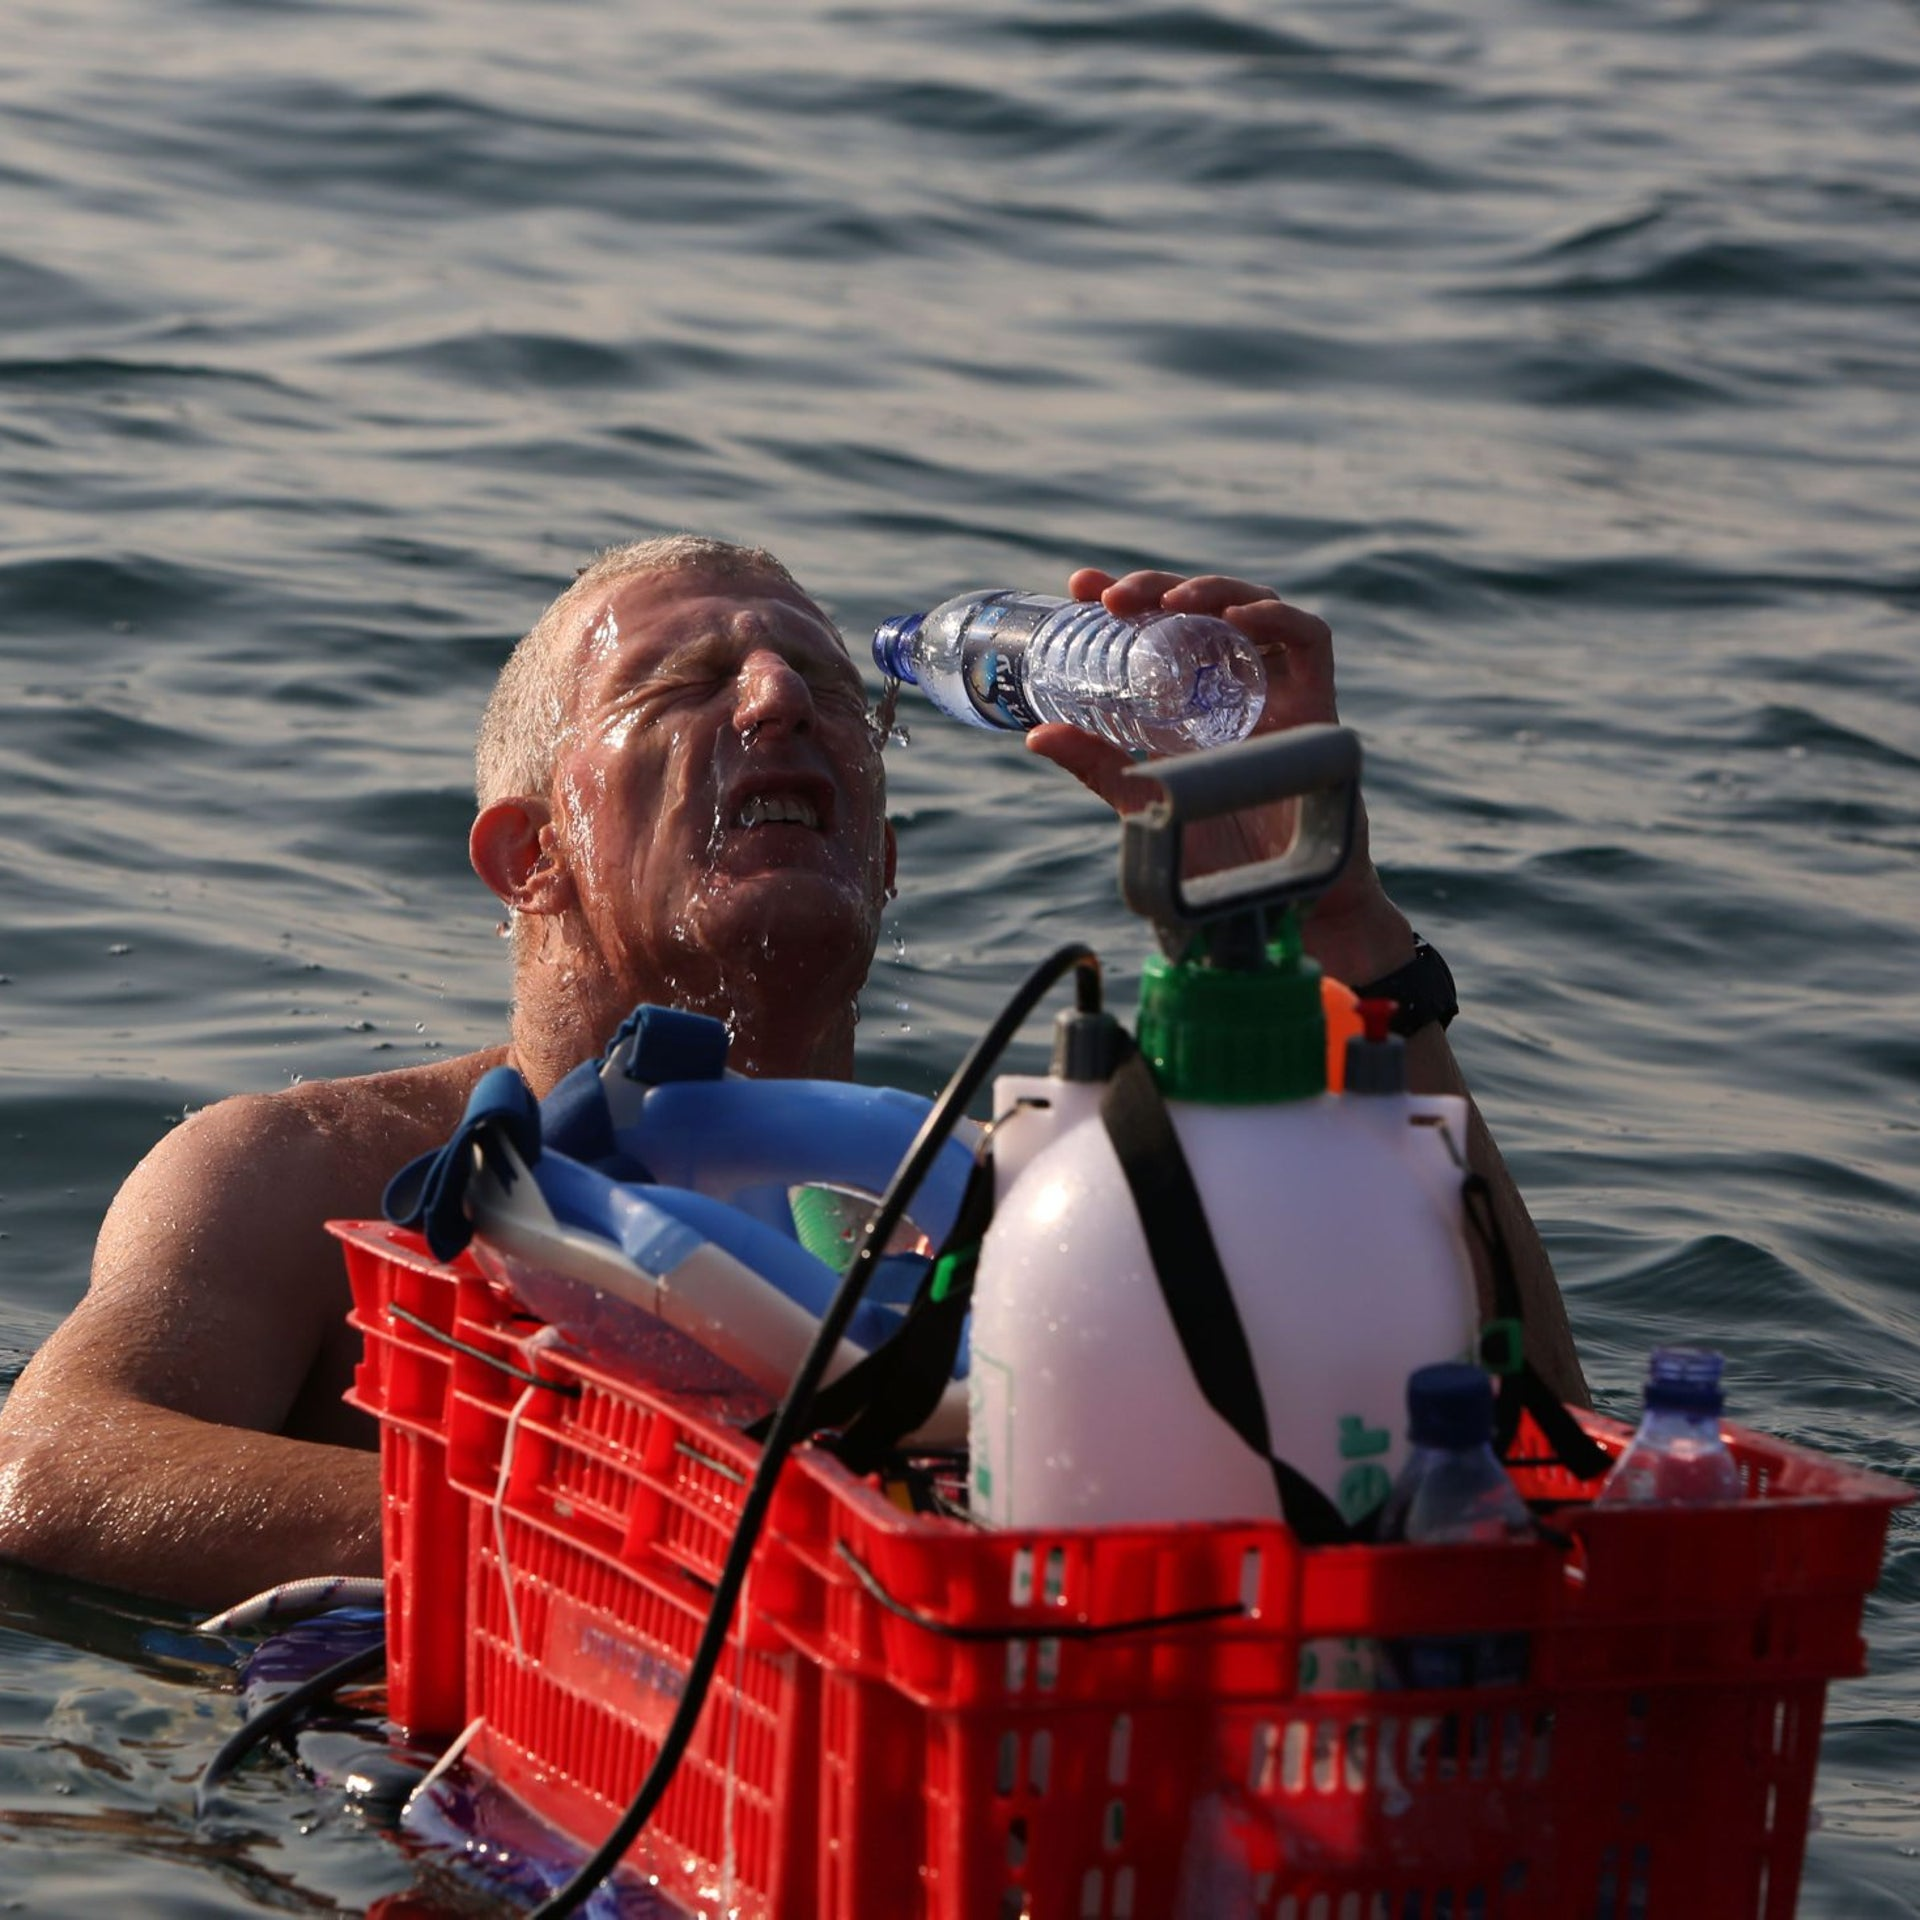 A participant washes the salty water off his face during a 16 kilometers swim from Jordan to Israel across the Dead Sea, organised by the EcoPeace charity aimed at raising awareness for the iconic water body which has been receding by roughly a metre each year, on November 15, 2016. The 27 extreme swimmers from across the world, equipped with special masks due to the water's high salinity, took seven hours to make the crossing, organisers said. The distance is only 18 kilometres and the mineral-rich lake was calm, but the high amount of salt in the water makes it nearly impossible to swim normally.